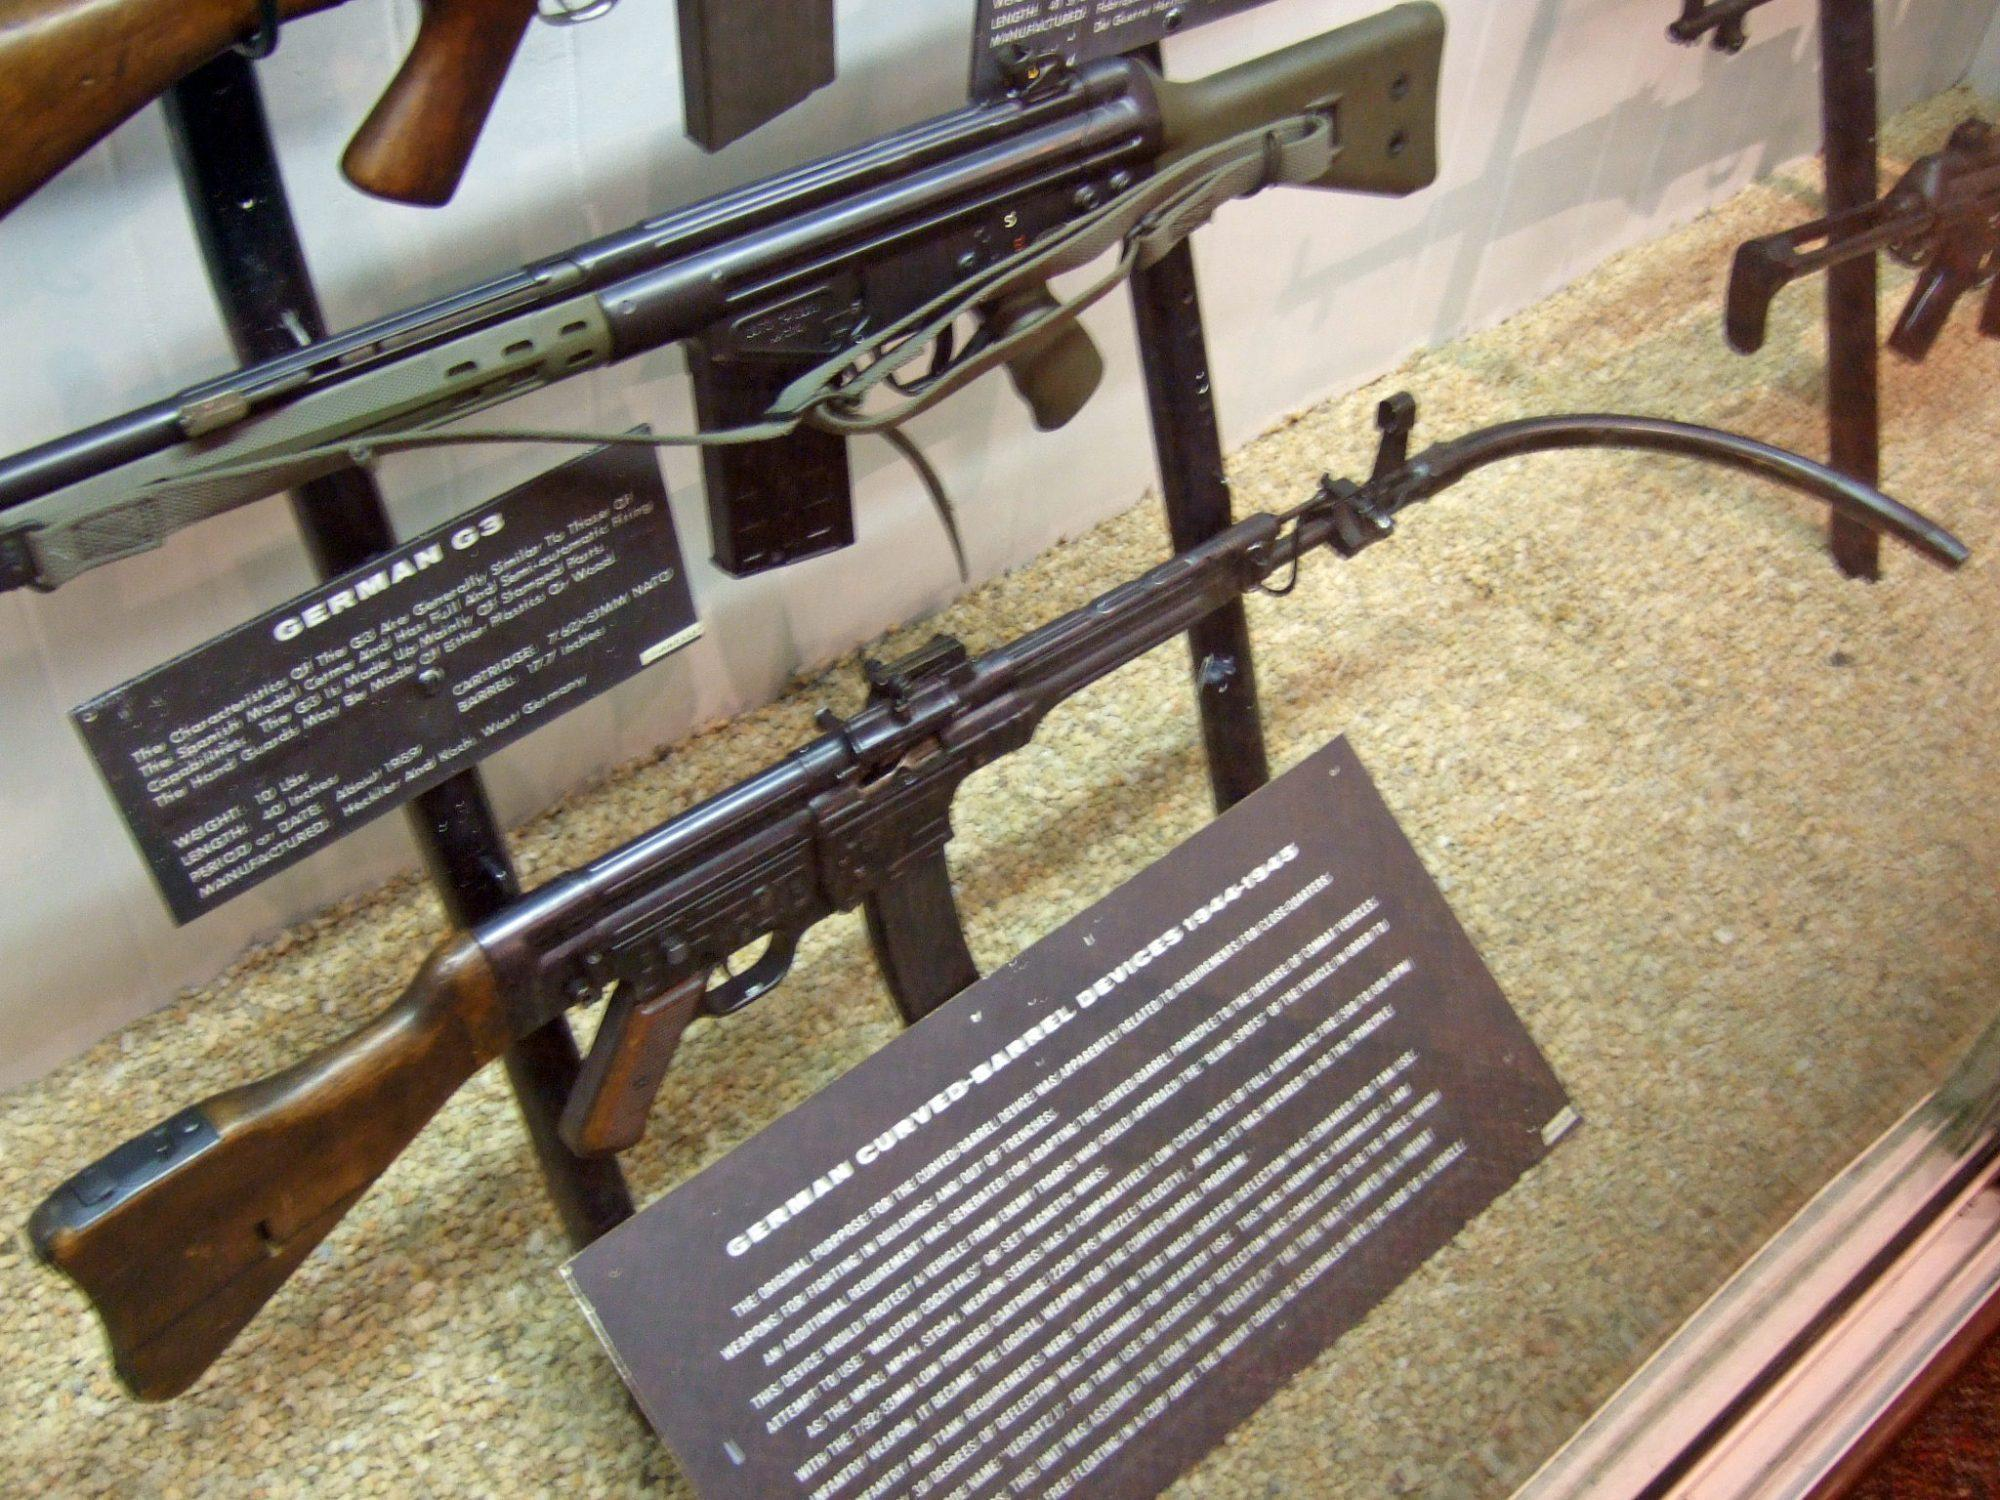 Krummlauf was an additional equipment for German G3 and StG44 rifles in the dawn of the World War II